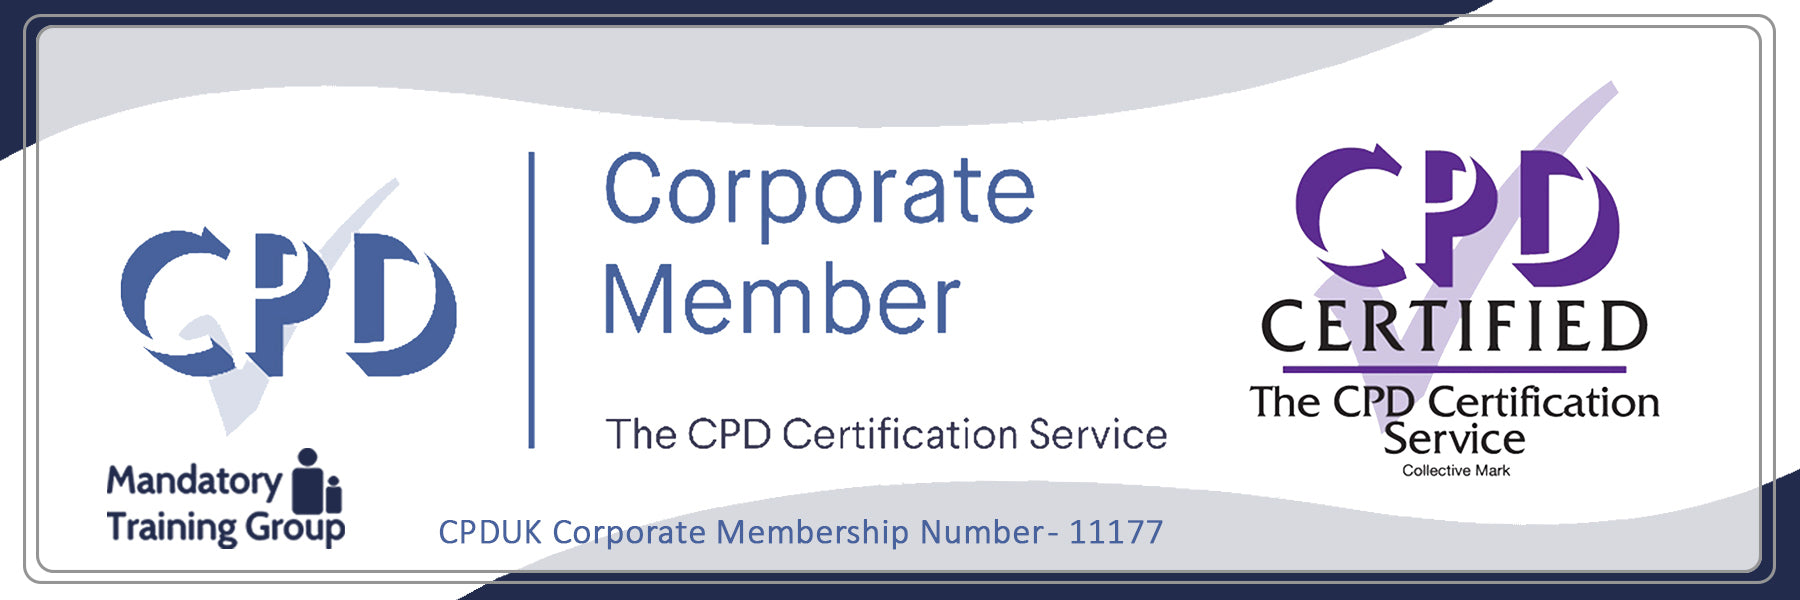 Health and Social Care Trainer Pack - CPDUK Accredited - The Mandatory Training Group UK -